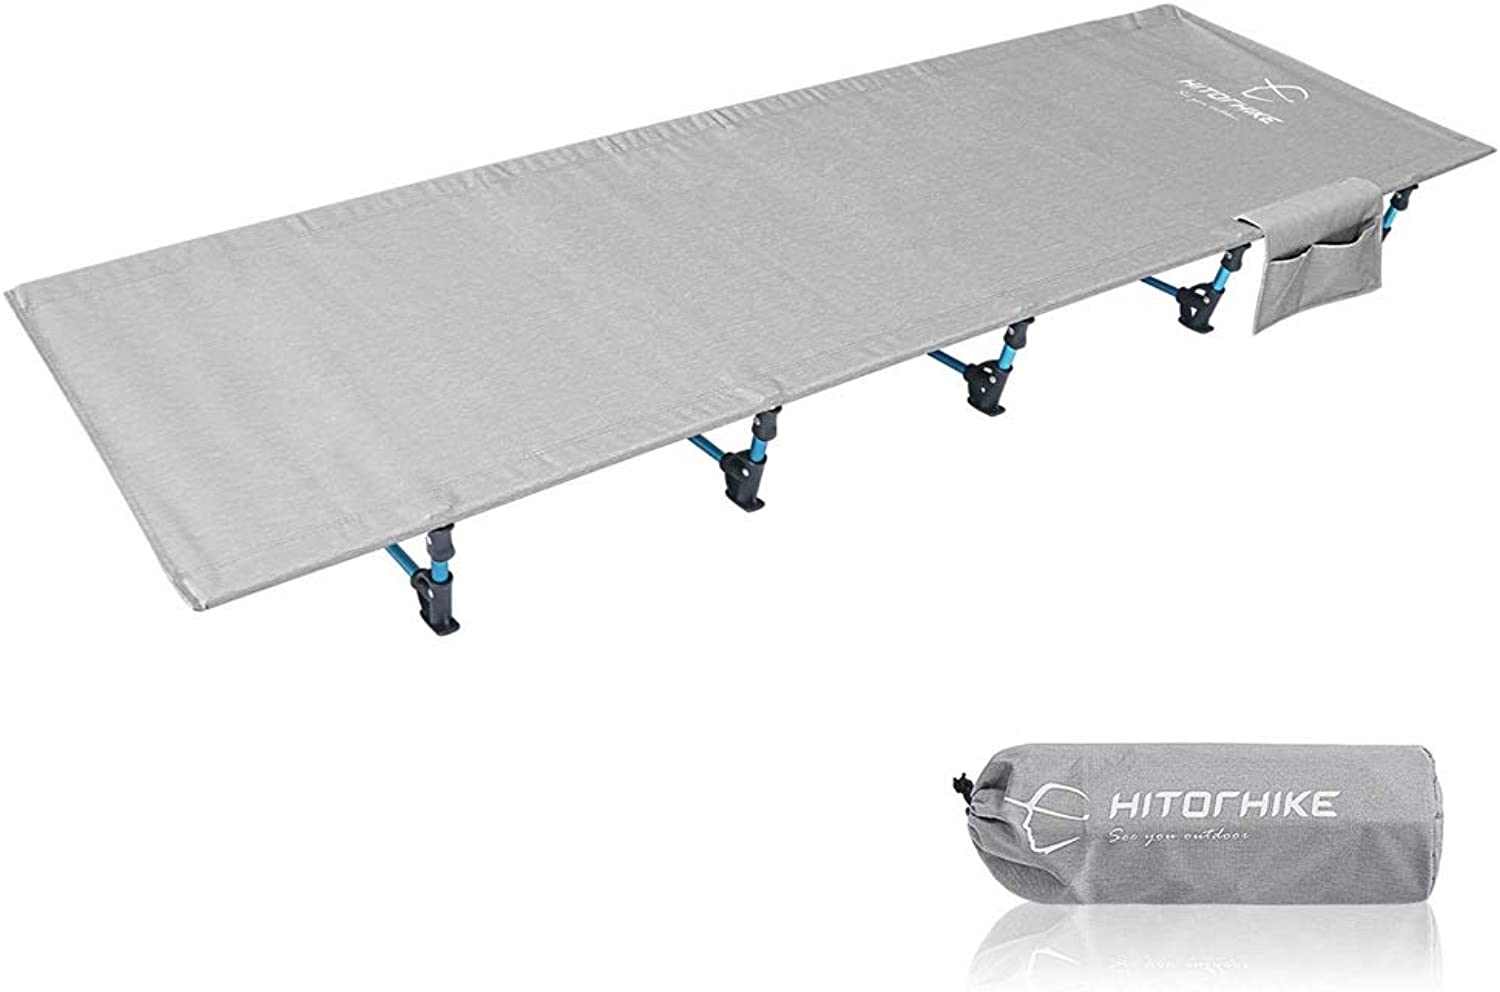 Folding Bed Folding Hiker Ultra Lightweight Travel Outdoor Aluminium Alloy Sleeping Bed for Camping Hiking Fishing Living Room Office Furniture (color   Silver, Size   190  70  17cm)